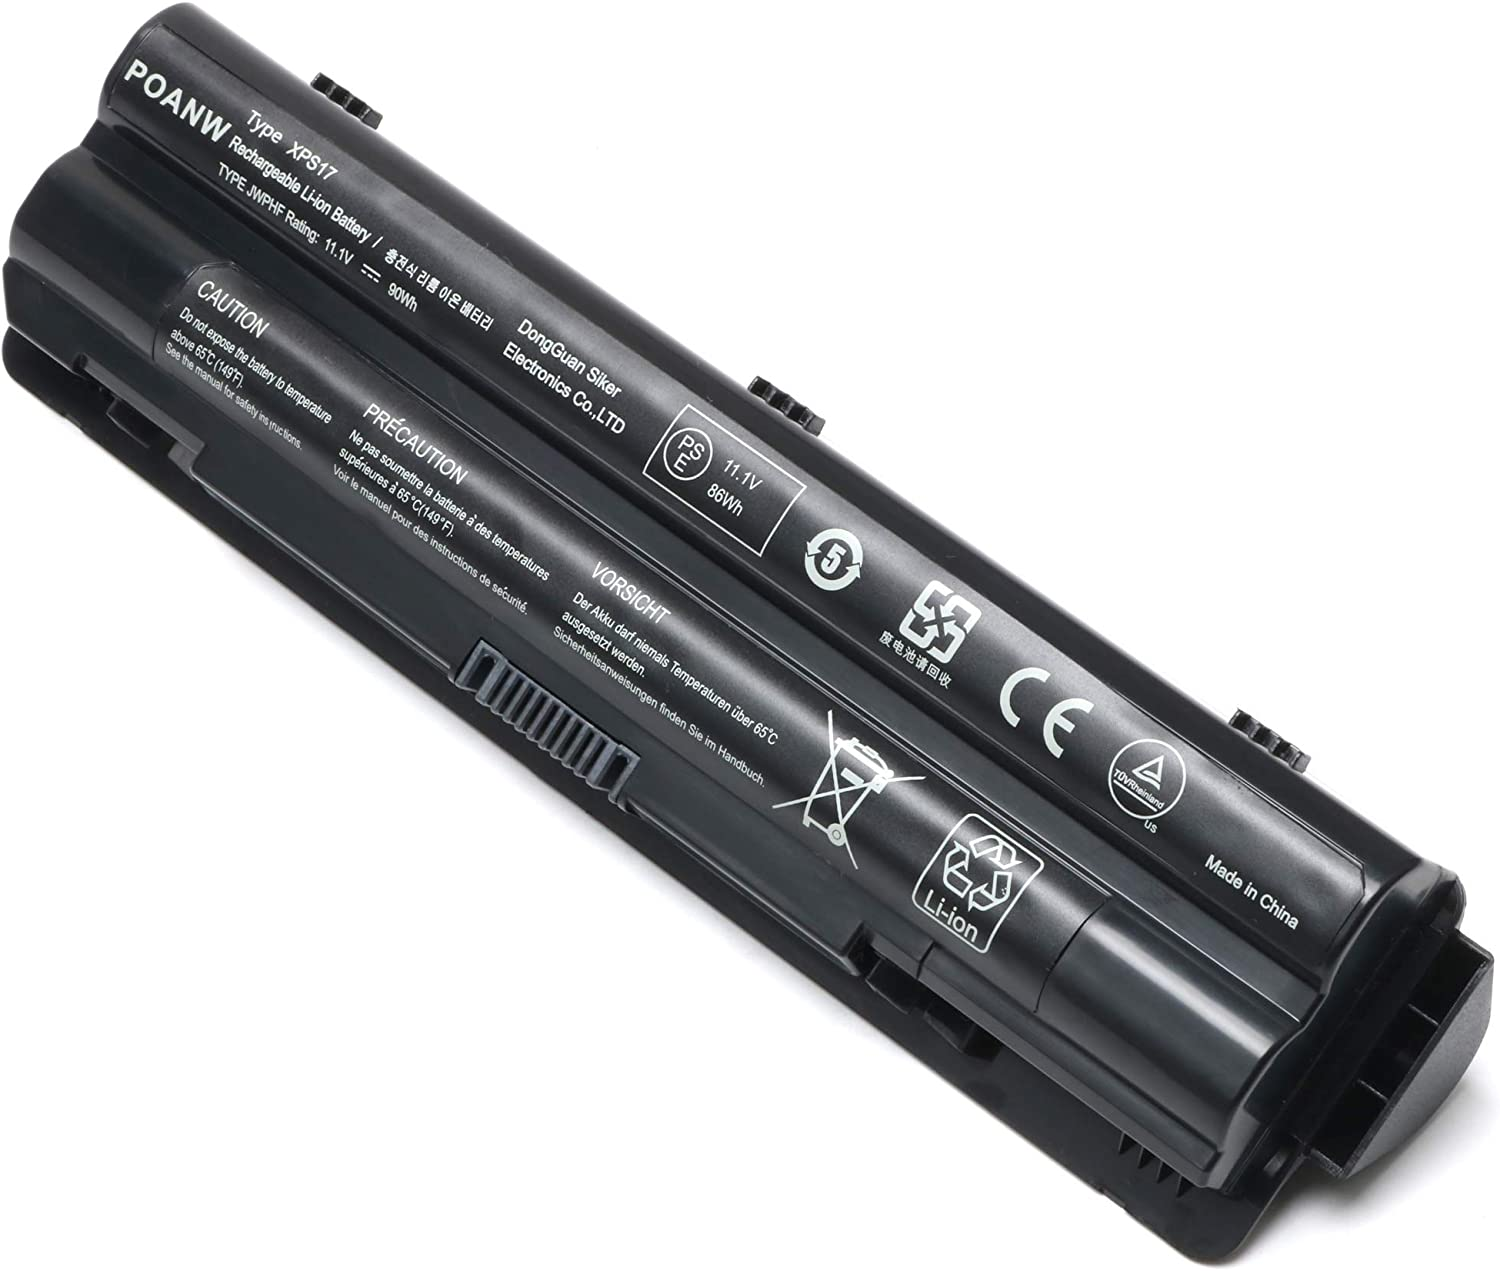 New XPS17 Laptop Battery for Dell XPS 17 L701X/L702X XPS 15 L501X/L502X XPS 14 L401X,fit: 312-1123 312-1127 453-10186 J70W7 JWPHF R795X WHXY3 [11.1V 90WH]